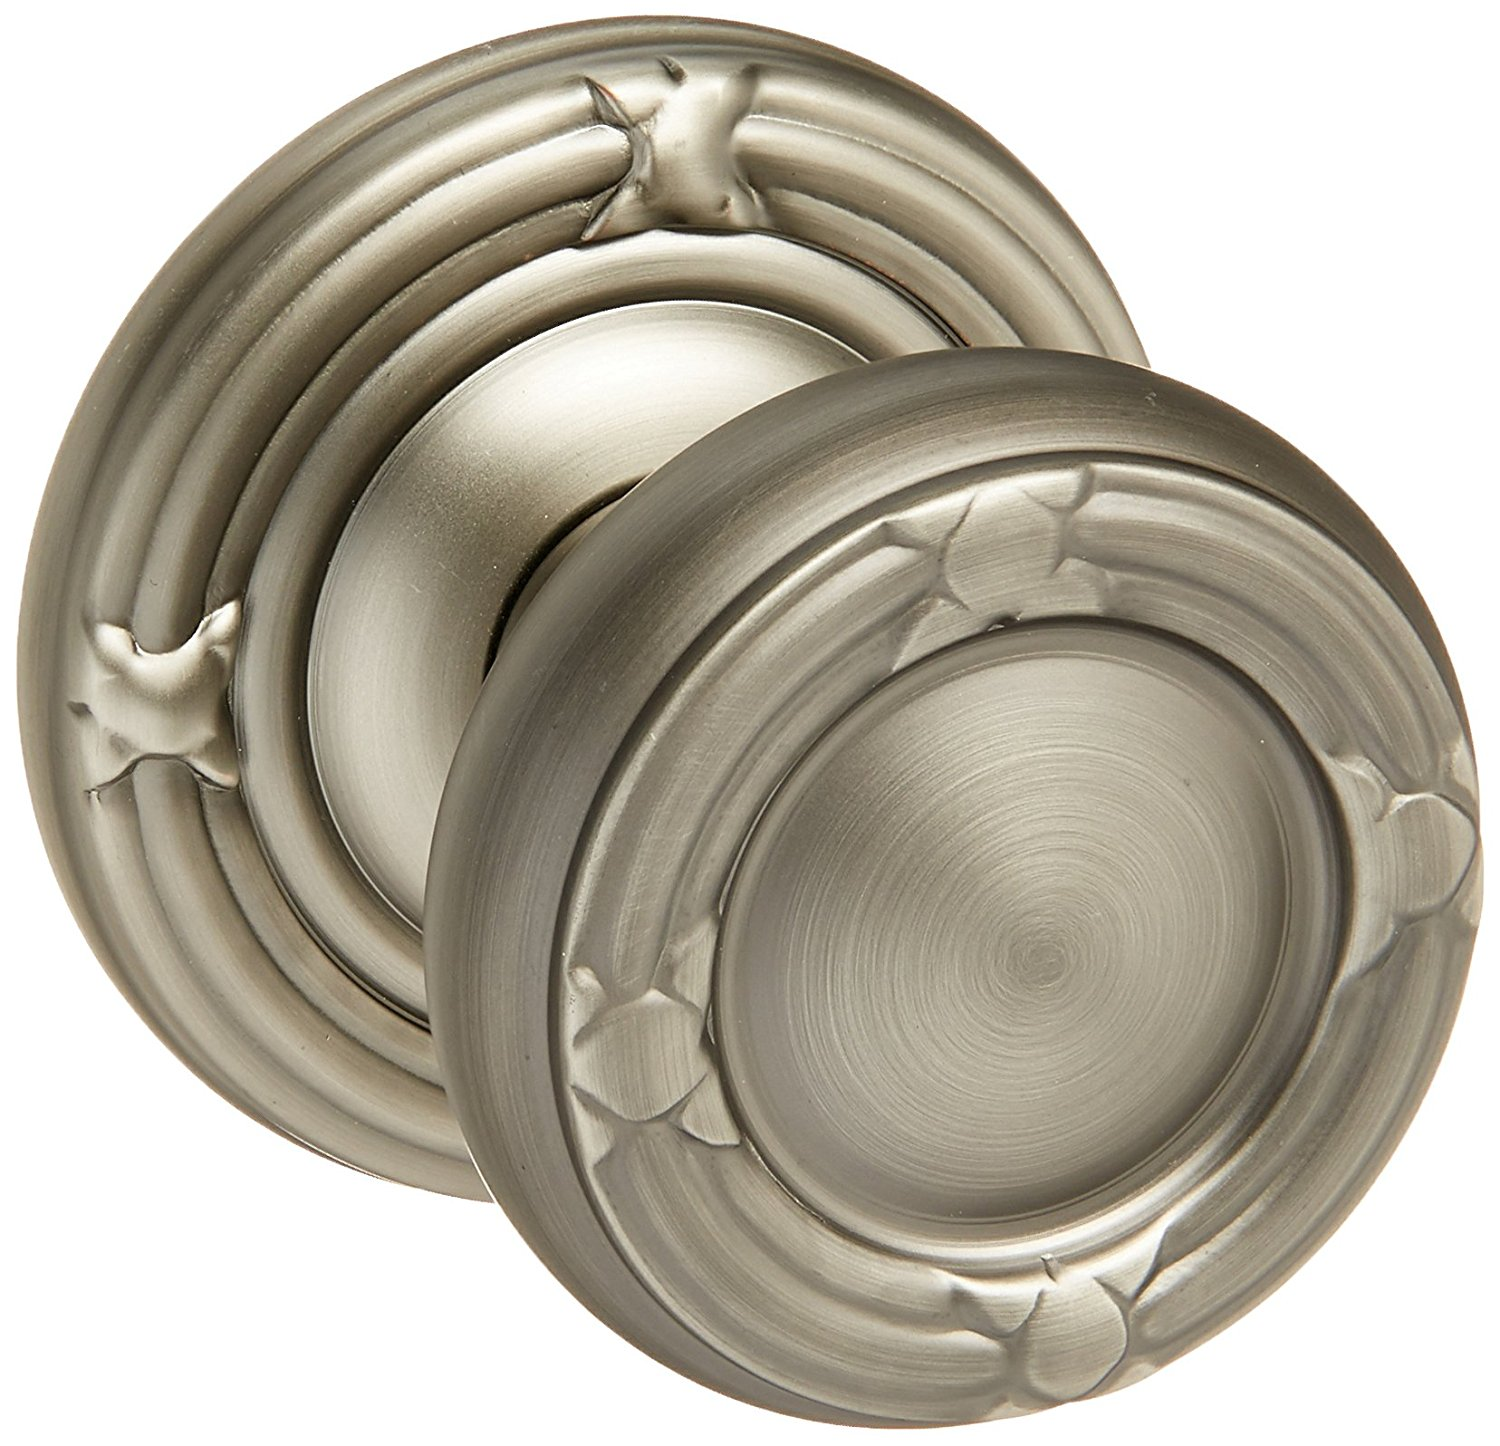 Get Quotations · Ribbon And Reed Door Set With Round Brass Knobs Double  Dummy In Antique Pewter. Old - Cheap Pewter Door Knobs, Find Pewter Door Knobs Deals On Line At